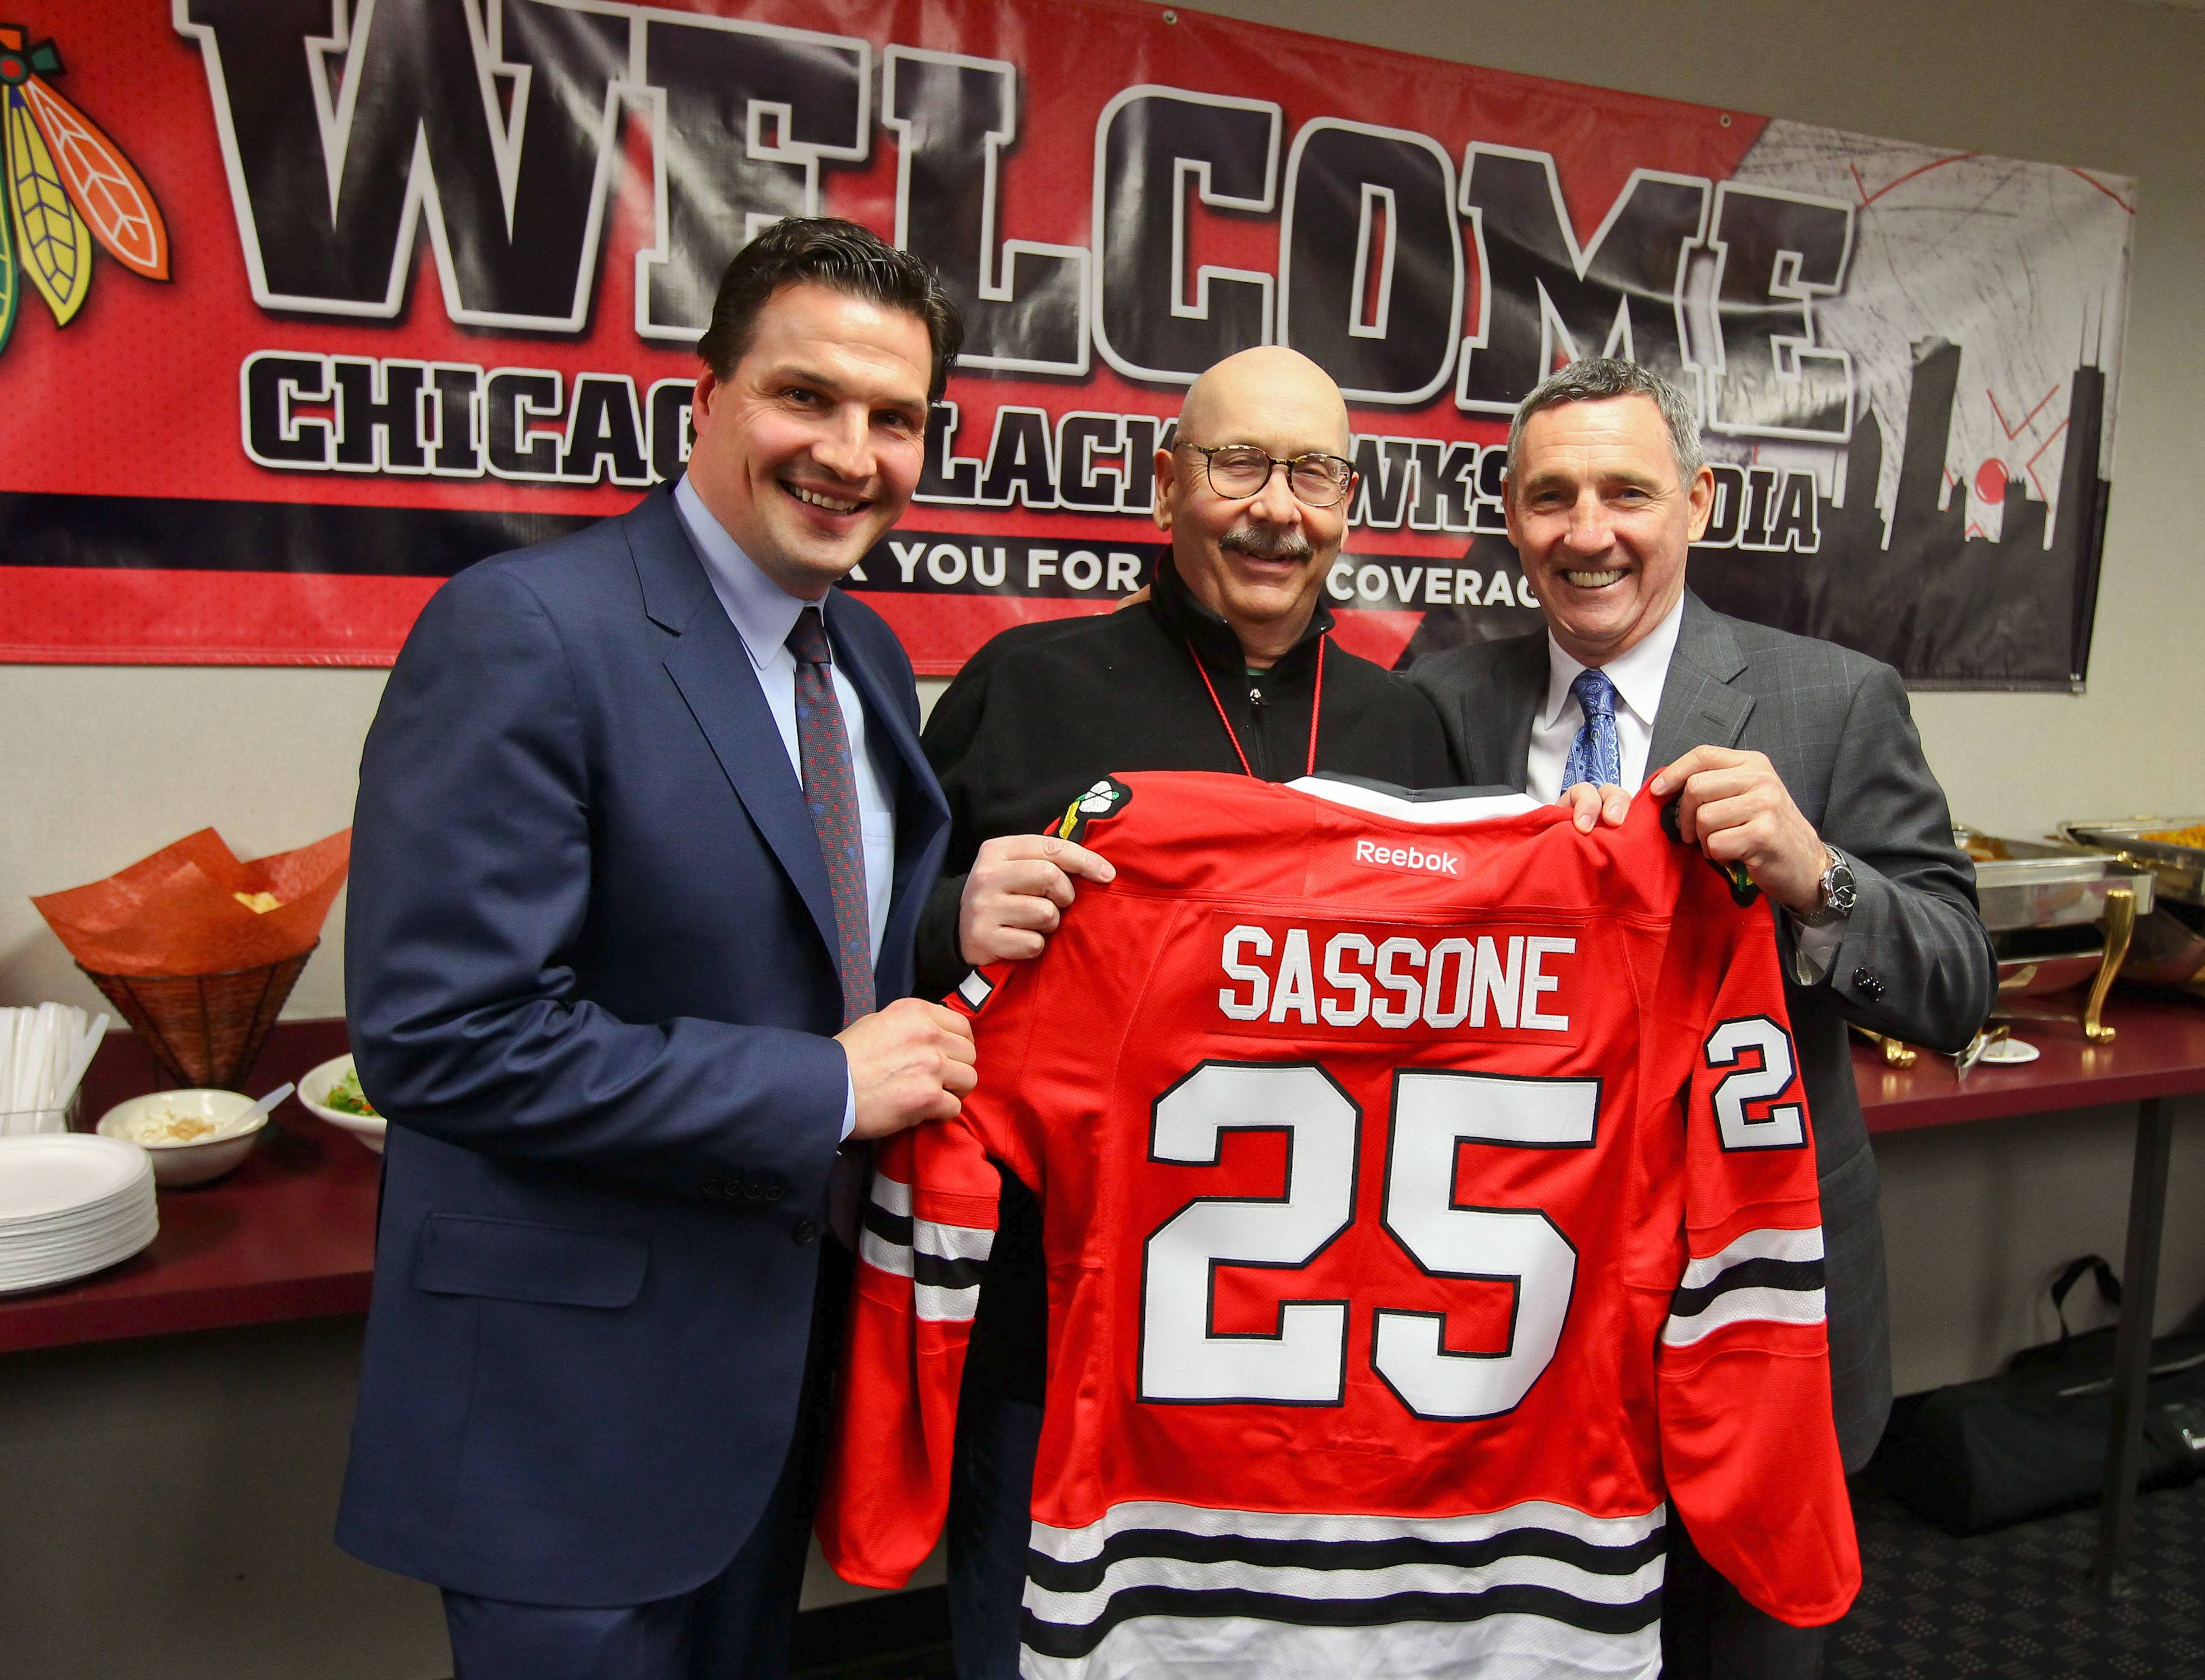 Photo courtesy of Chicago Blackhawks ¬ In honor of his 25 years of covering the team, Tim Sassone of the Daily Herald was presented with a Blackhawks jersey by broadcaster Eddie Olczyk, left, and hockey legend Denis Savard during Friday's home game.